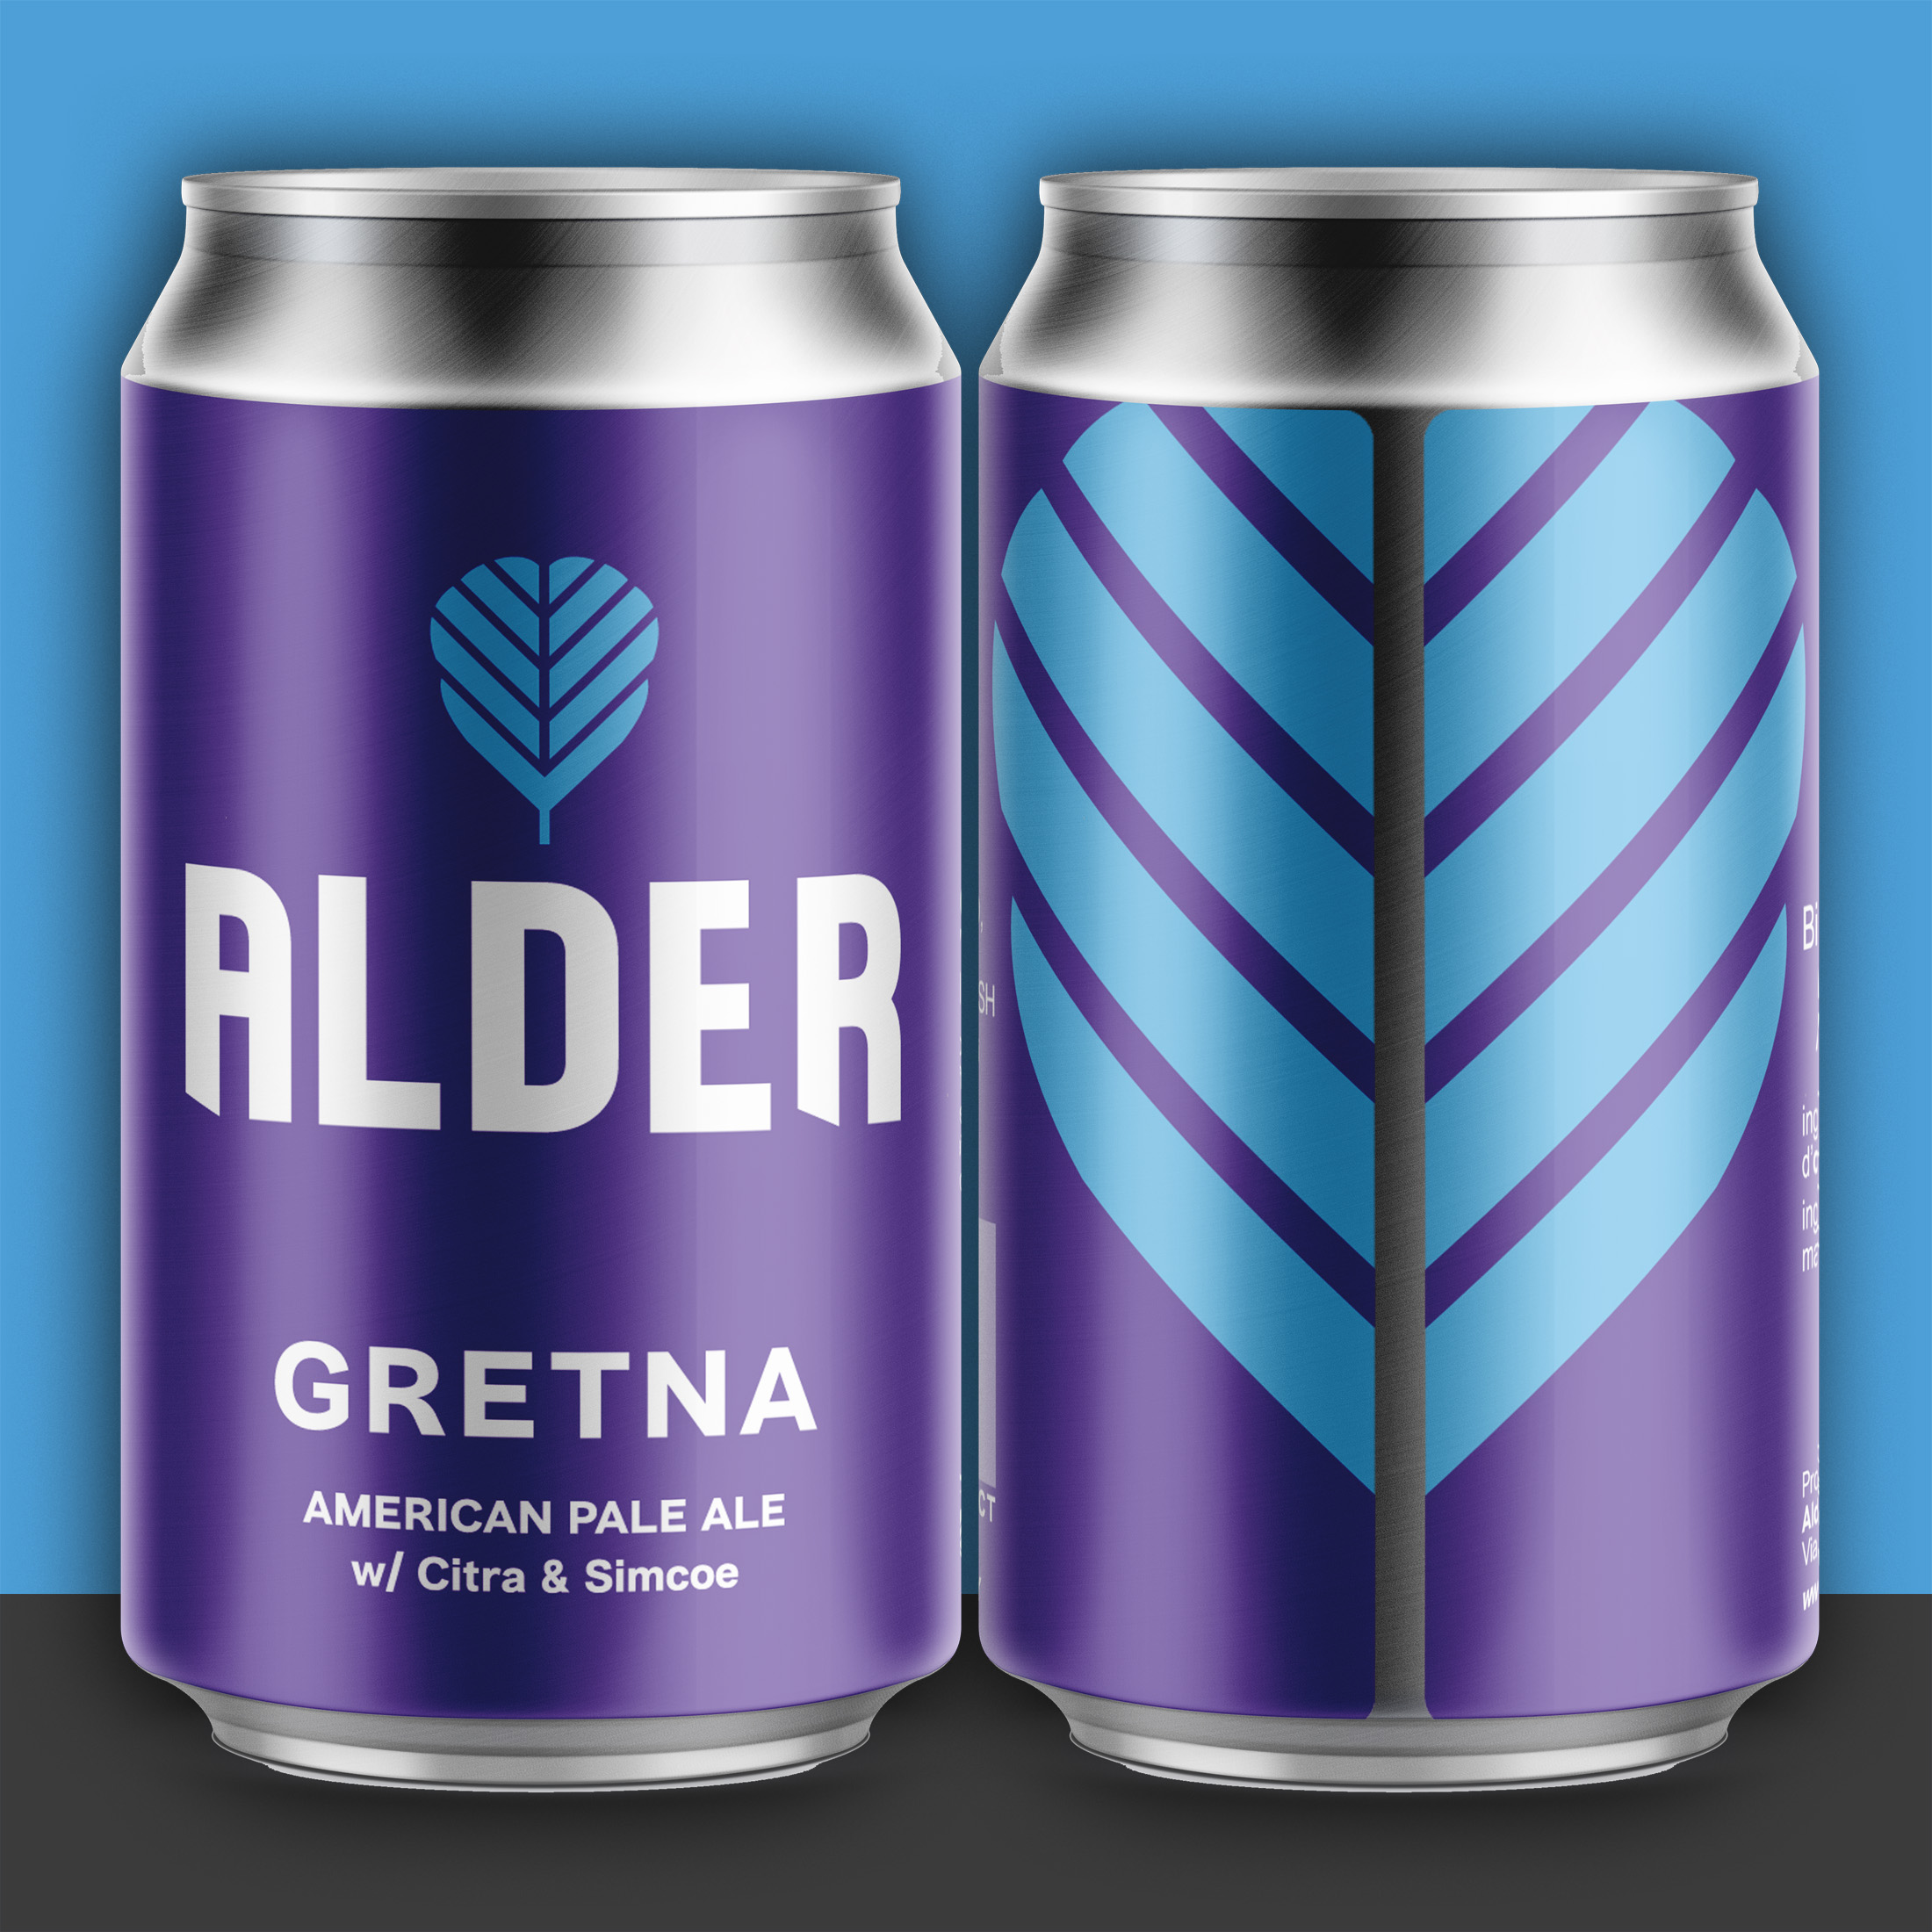 ByVolume Creates Brand Identity and Packaging Design for Alder Beer Co.